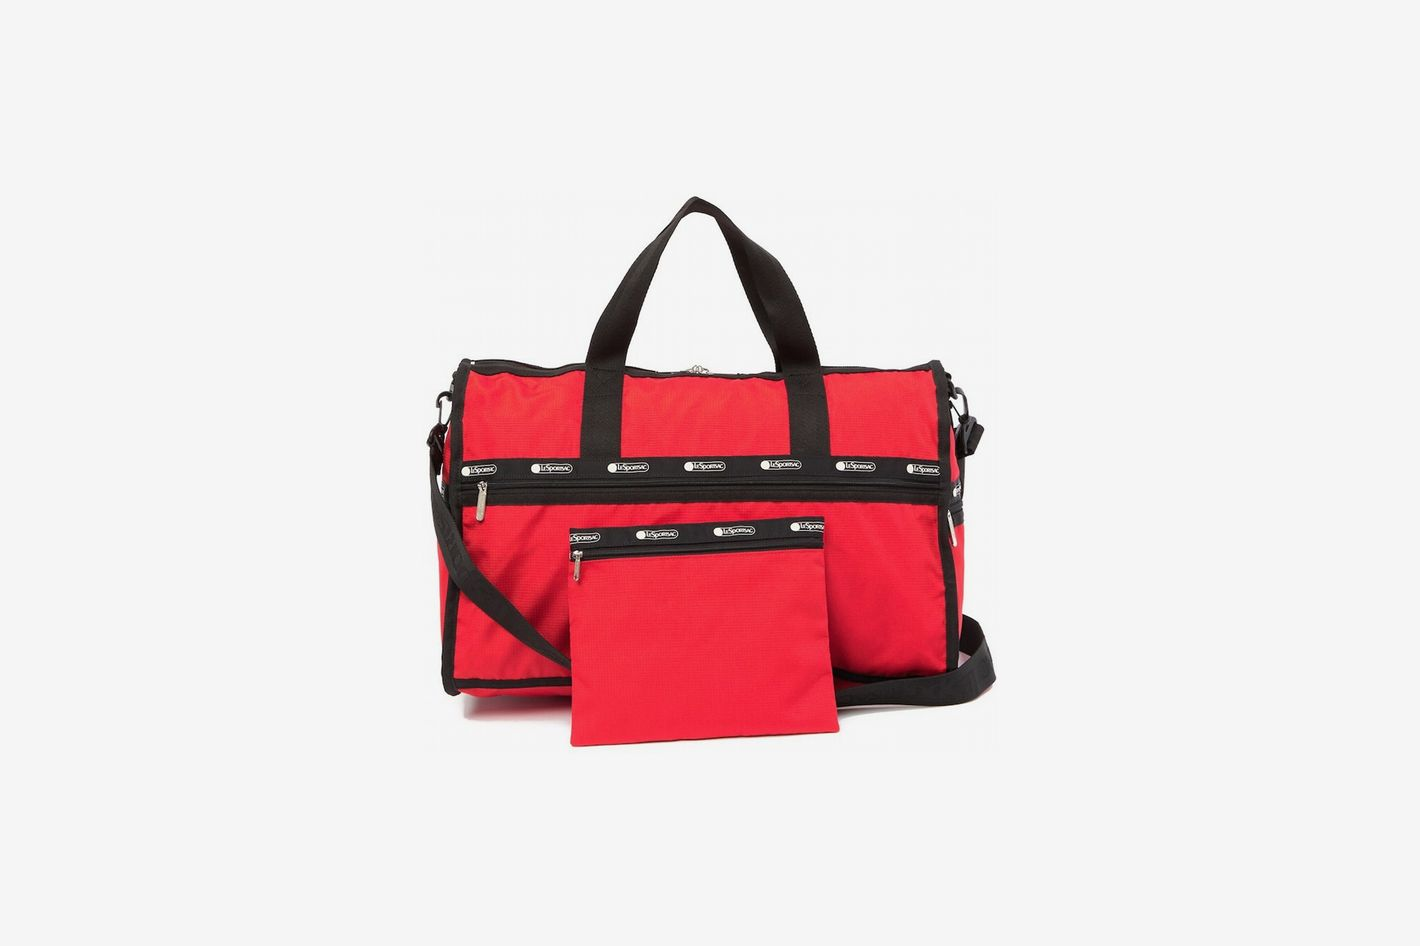 LeSportsac Rebecca Weekend Duffle Bag